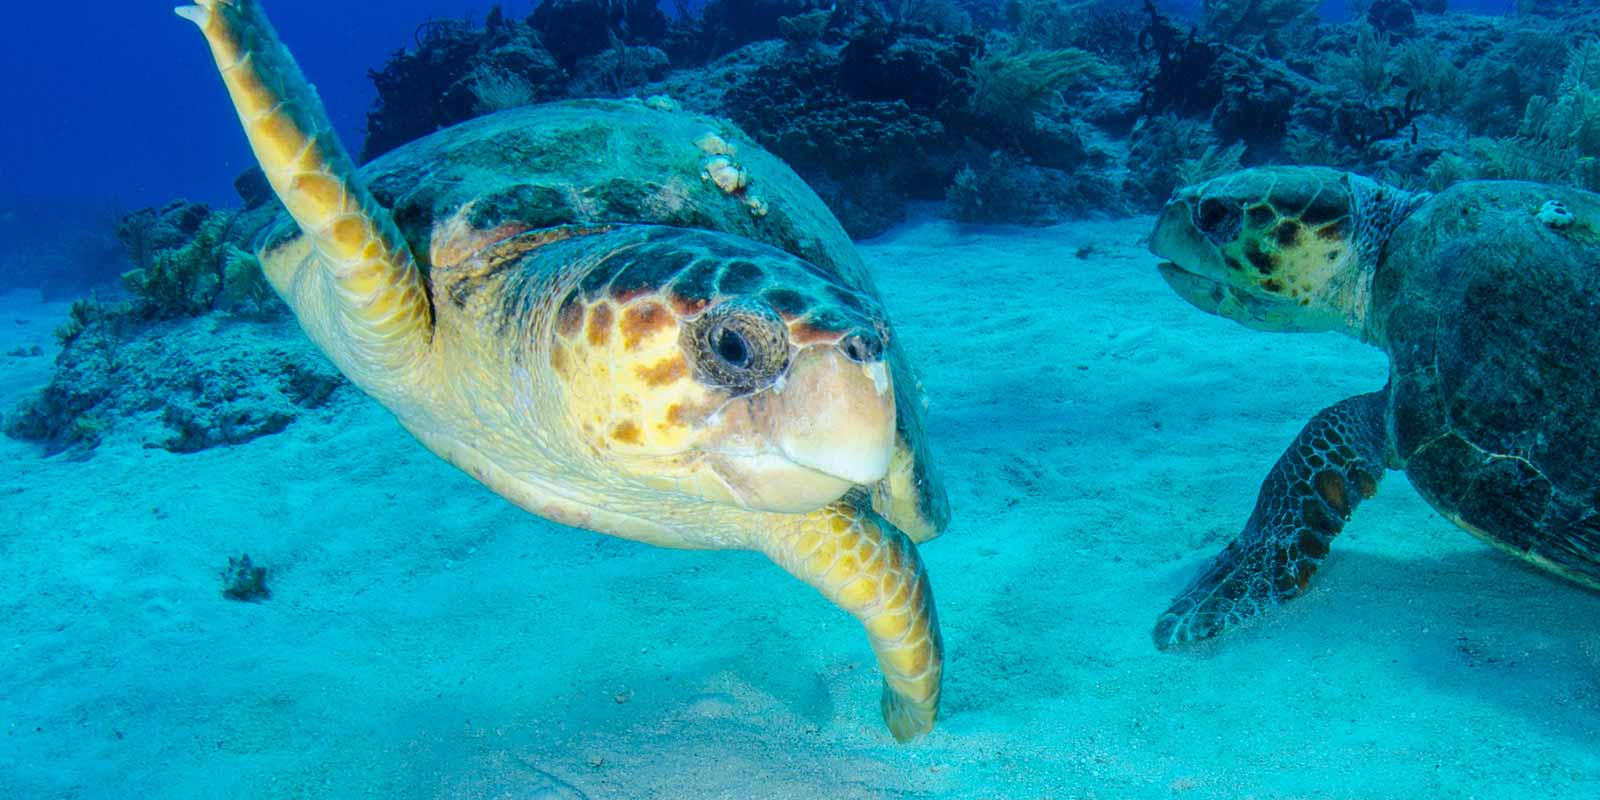 A pair of turtles on the Caribbean sea bed.